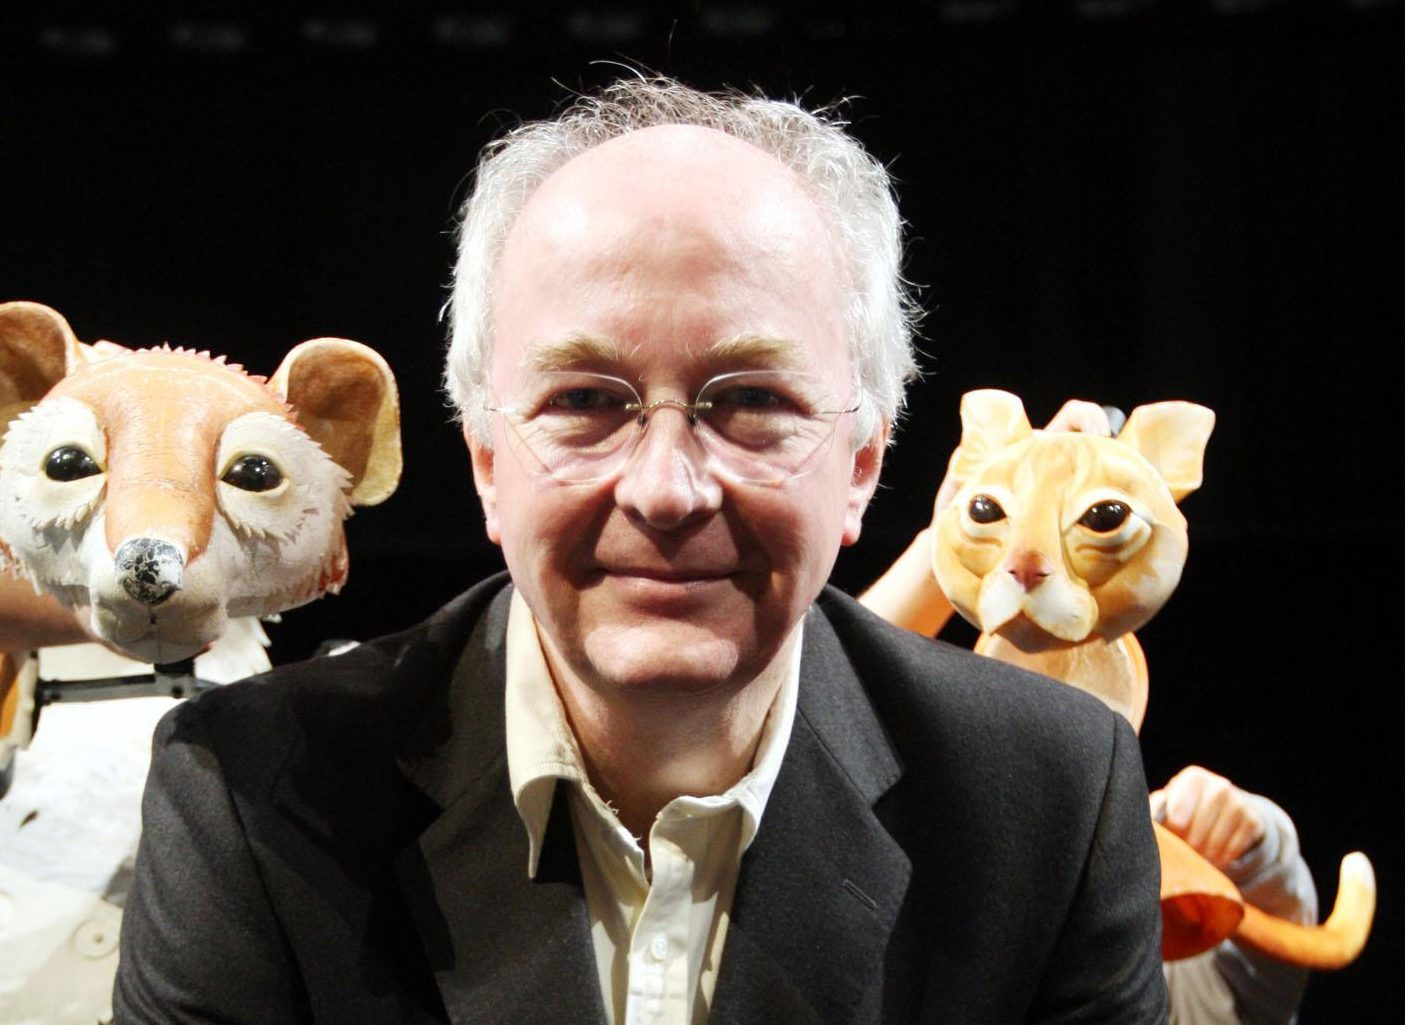 """Philip Pullman said fiction can provide """"comfort"""" amid the turmoil the world is facing with uncertainty over Brexit and Donald Trump's election. (Steve Parsons/PA Wire)"""